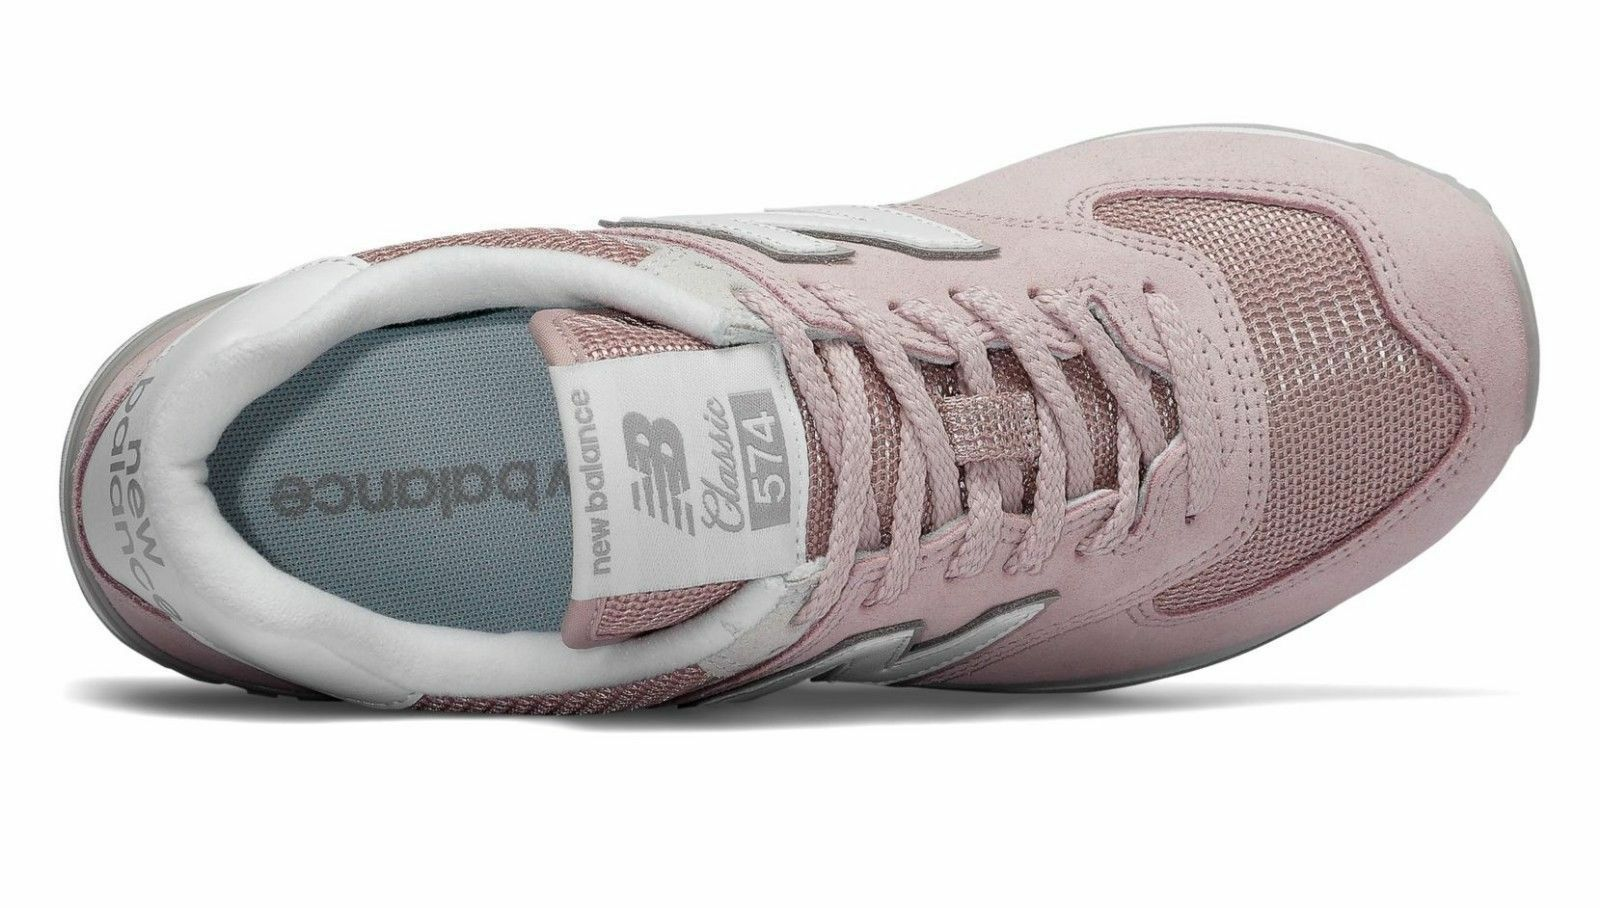 New Balance WL574ESP 574 Faded Rose Pink Lifestyle Women Sneakers image 4